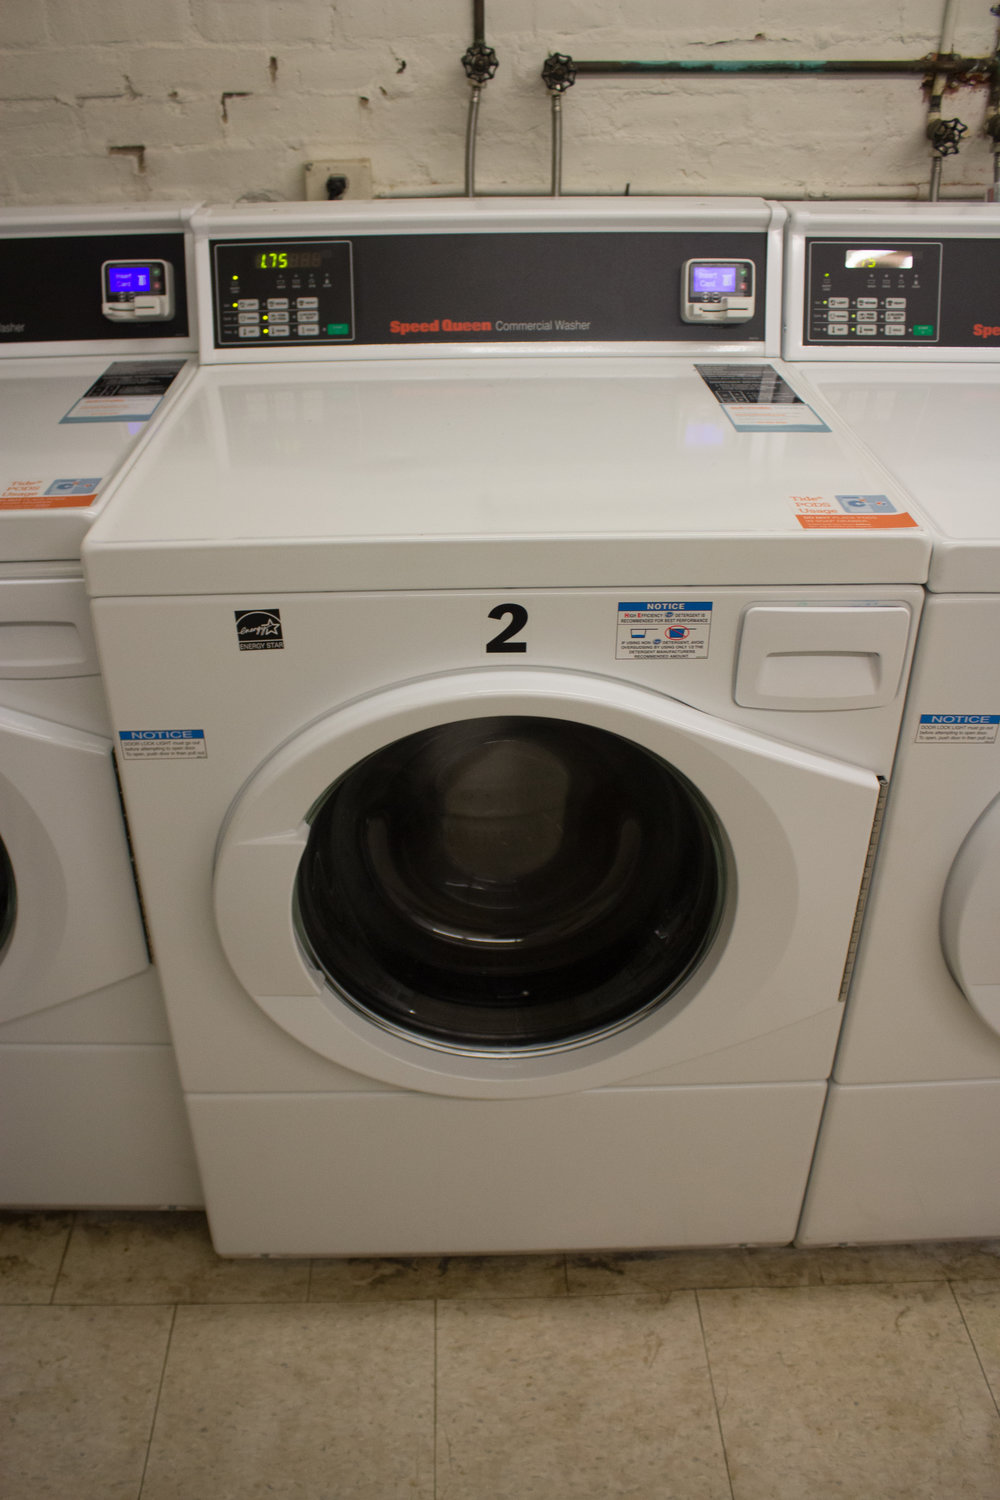 Photo courtesy of Izzy Olgaard '18 New laundry washers that have been installed. The price of doing laundry in the new washers with multiple washing options is $1.75.